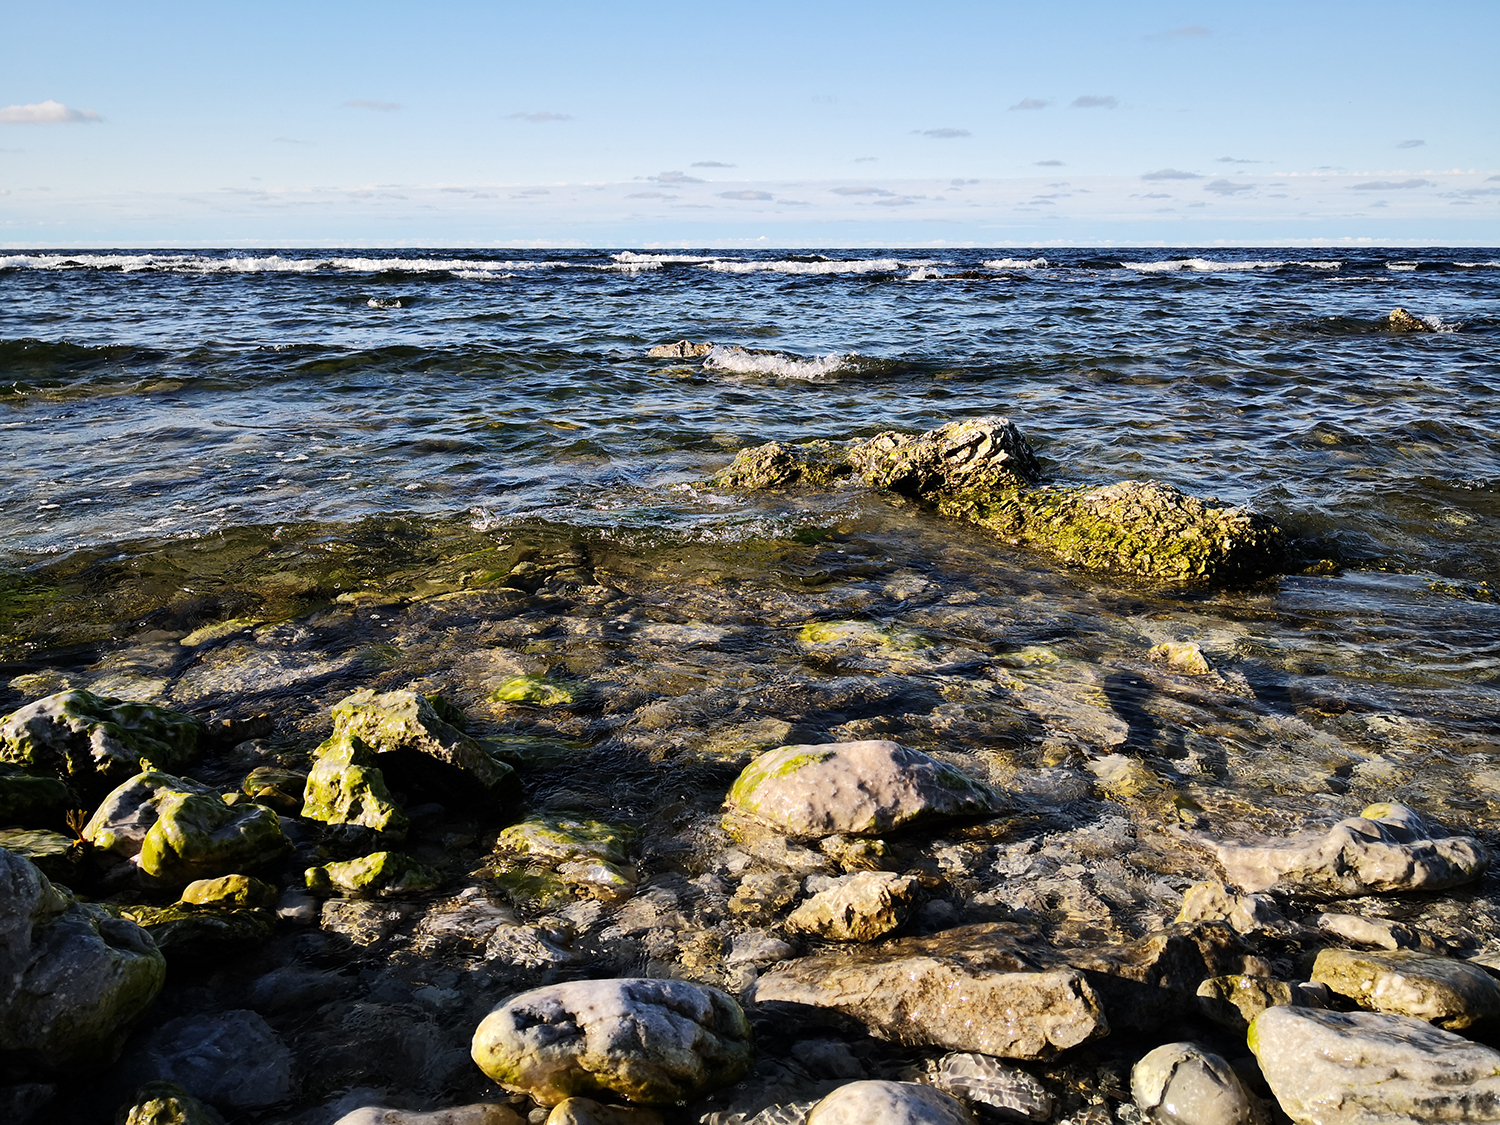 View of the Baltic Sea at a rocky shore in Gotland